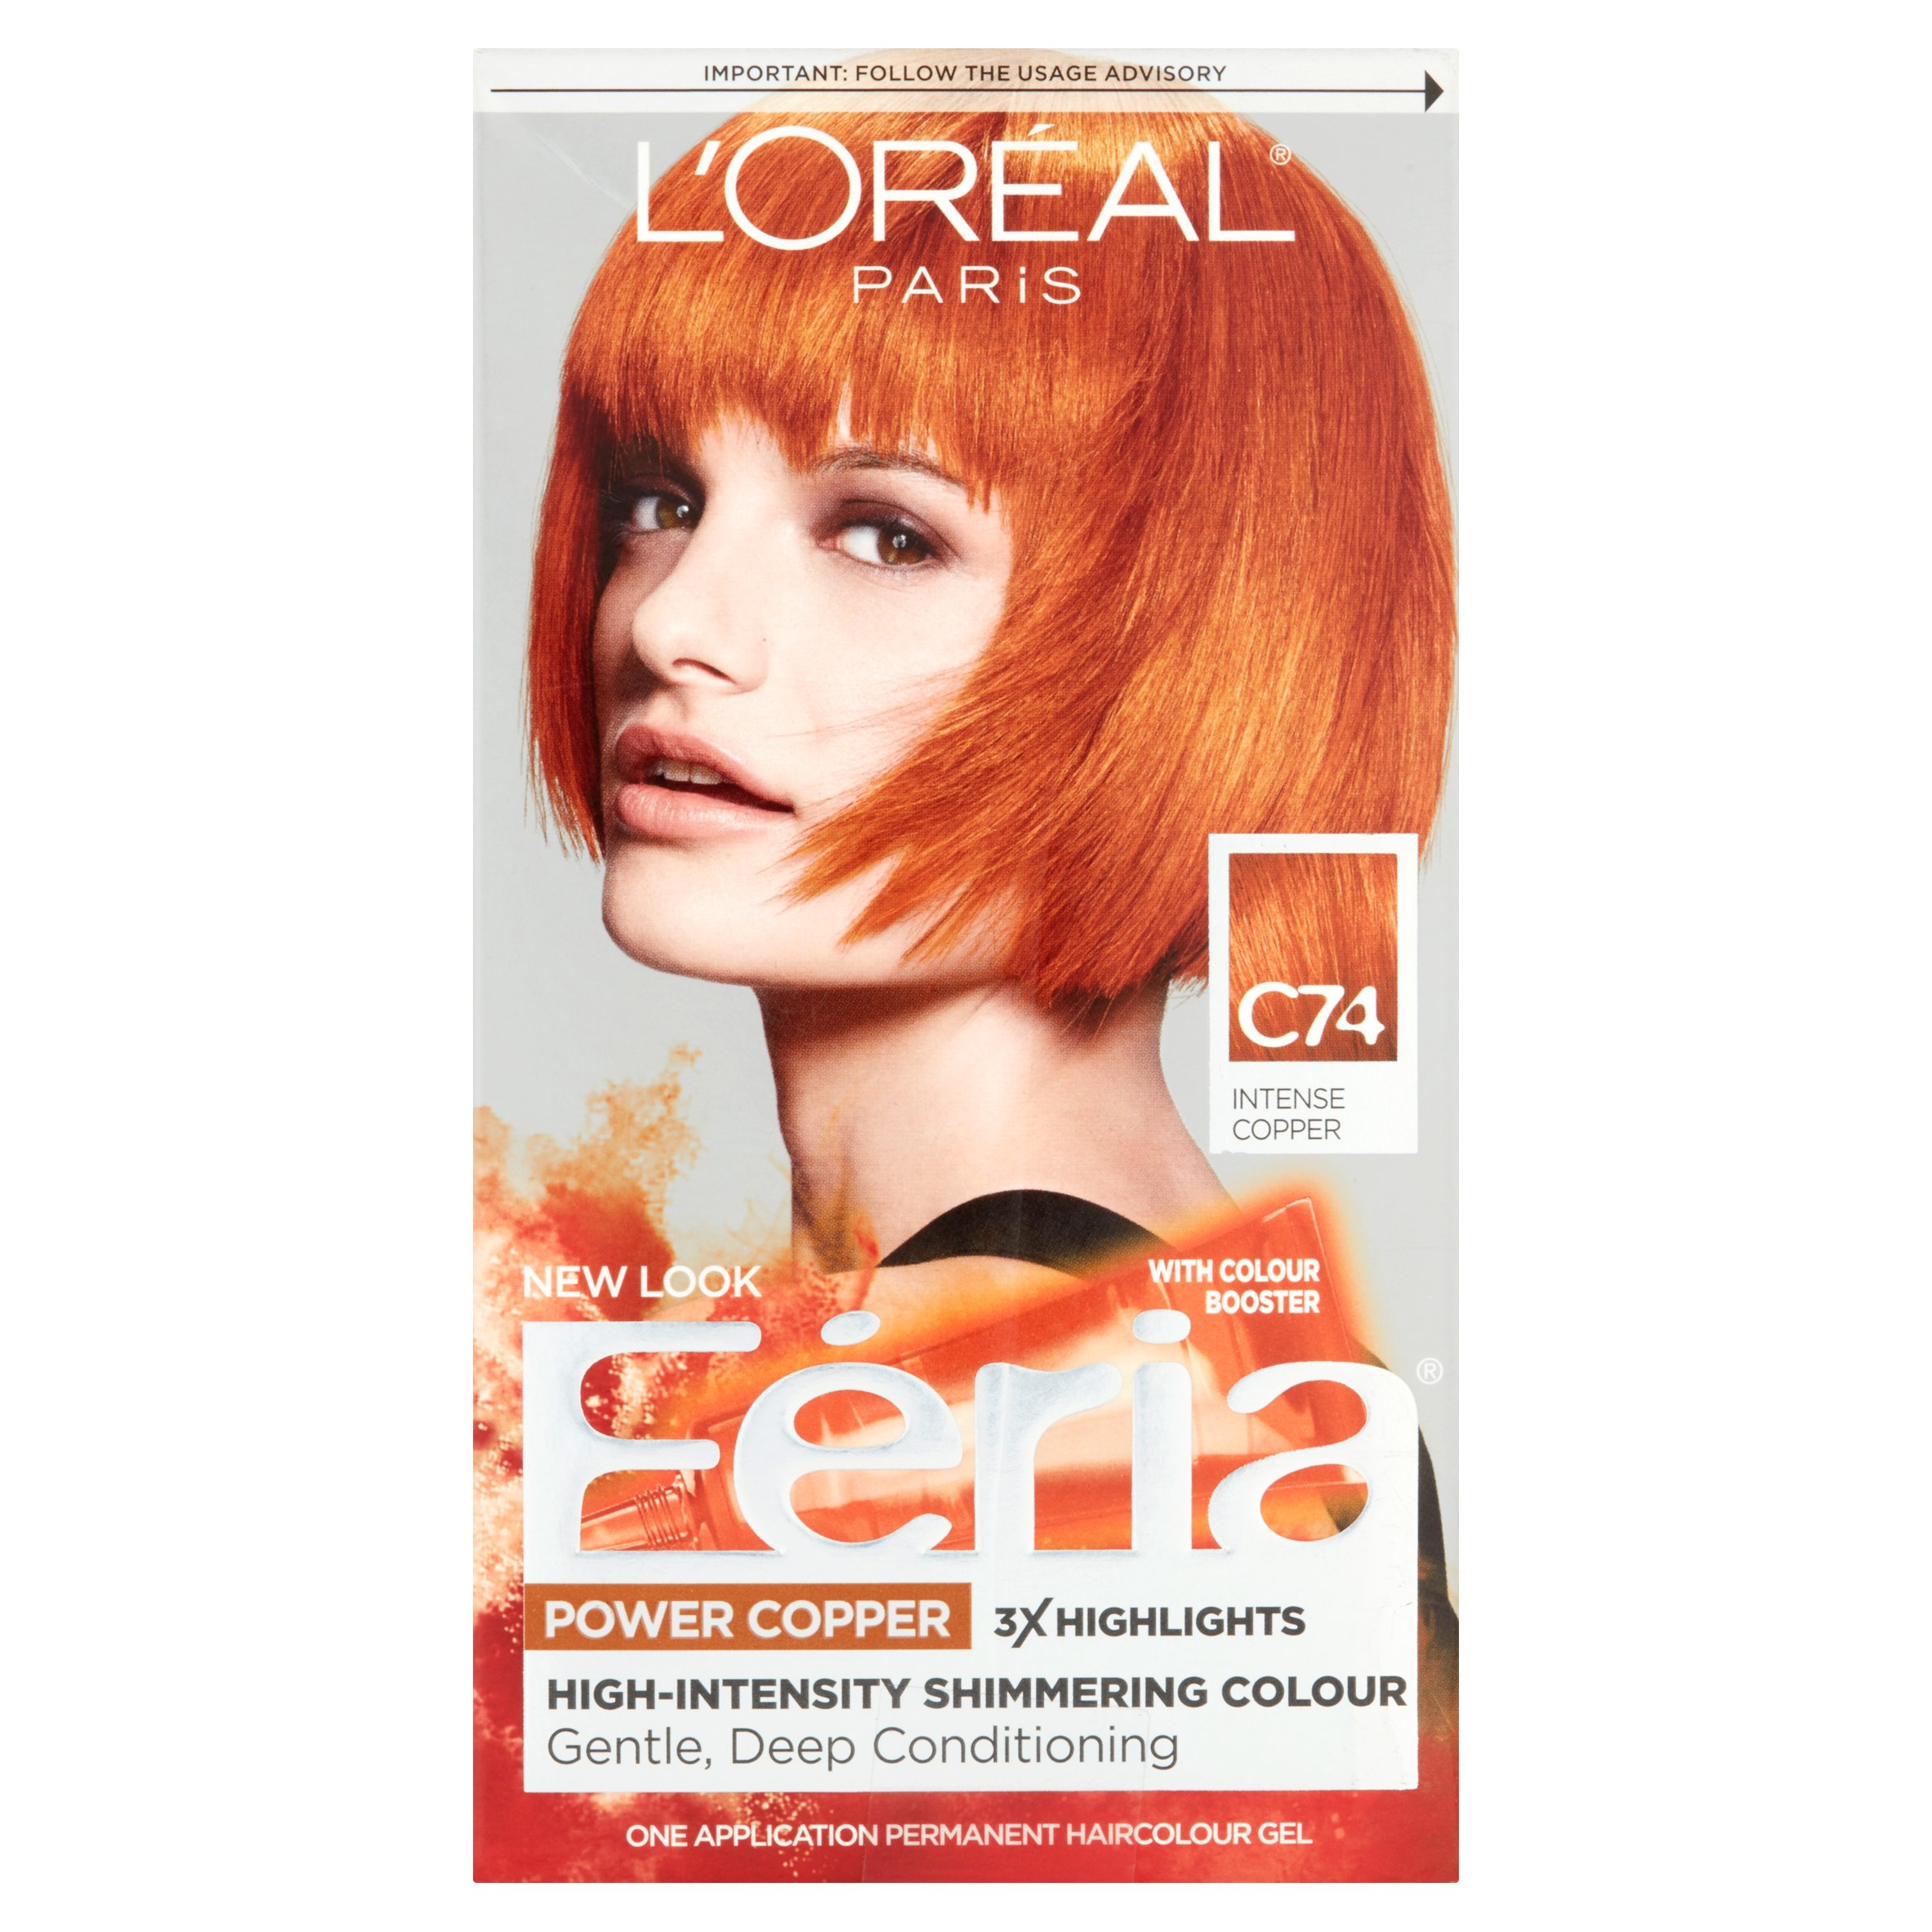 L'Oreal Paris Feria Power Copper One Application Permanent Haircolour Gel C74 Intense Copper